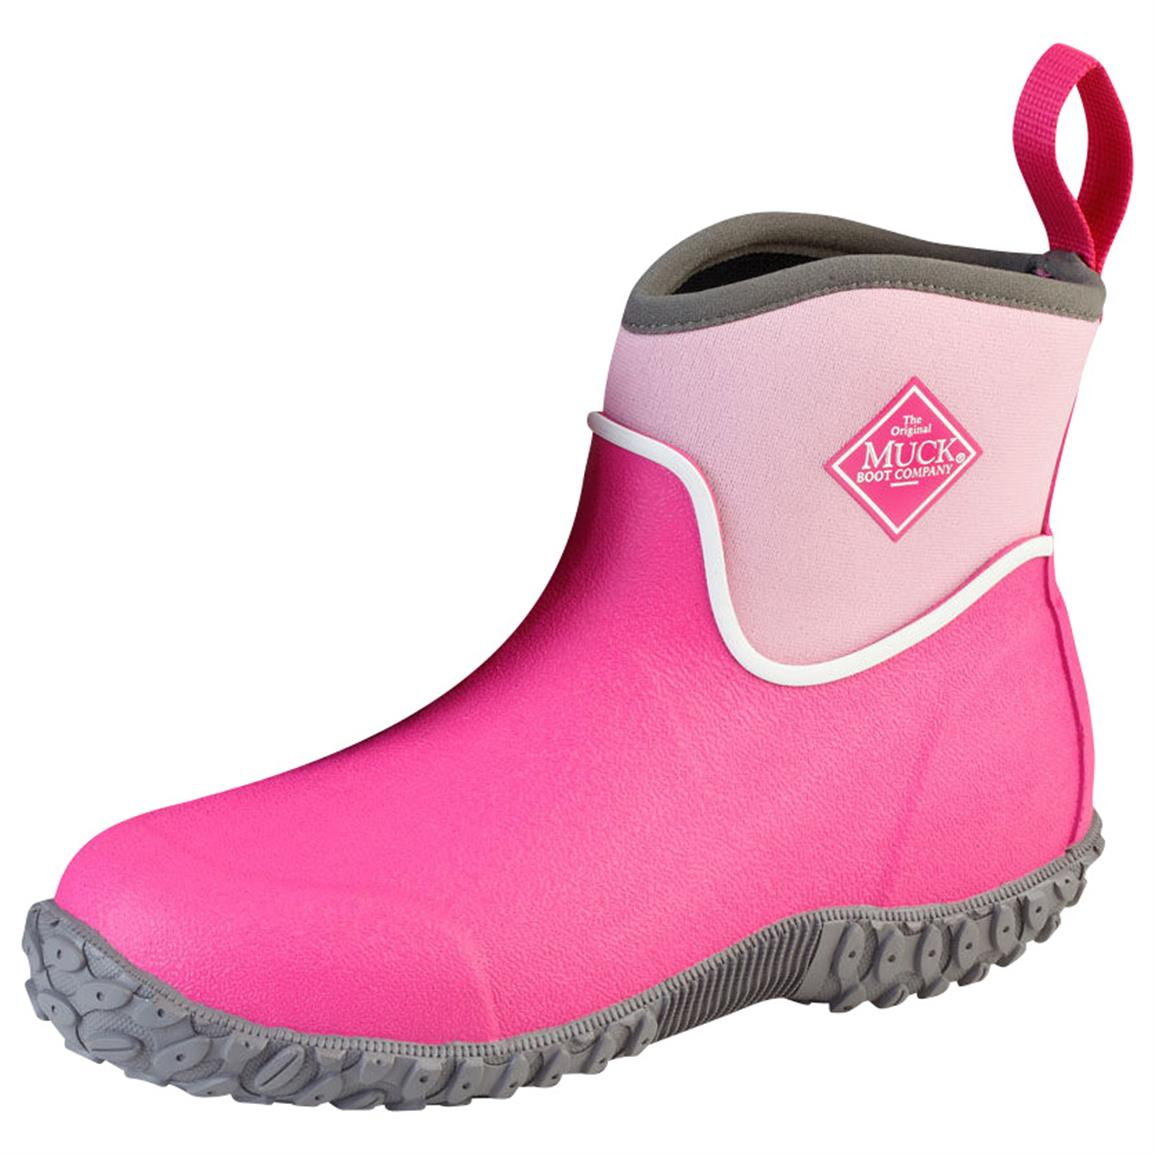 Muck Boot Kids' Muckster II Ankle Waterproof Boots, Pink